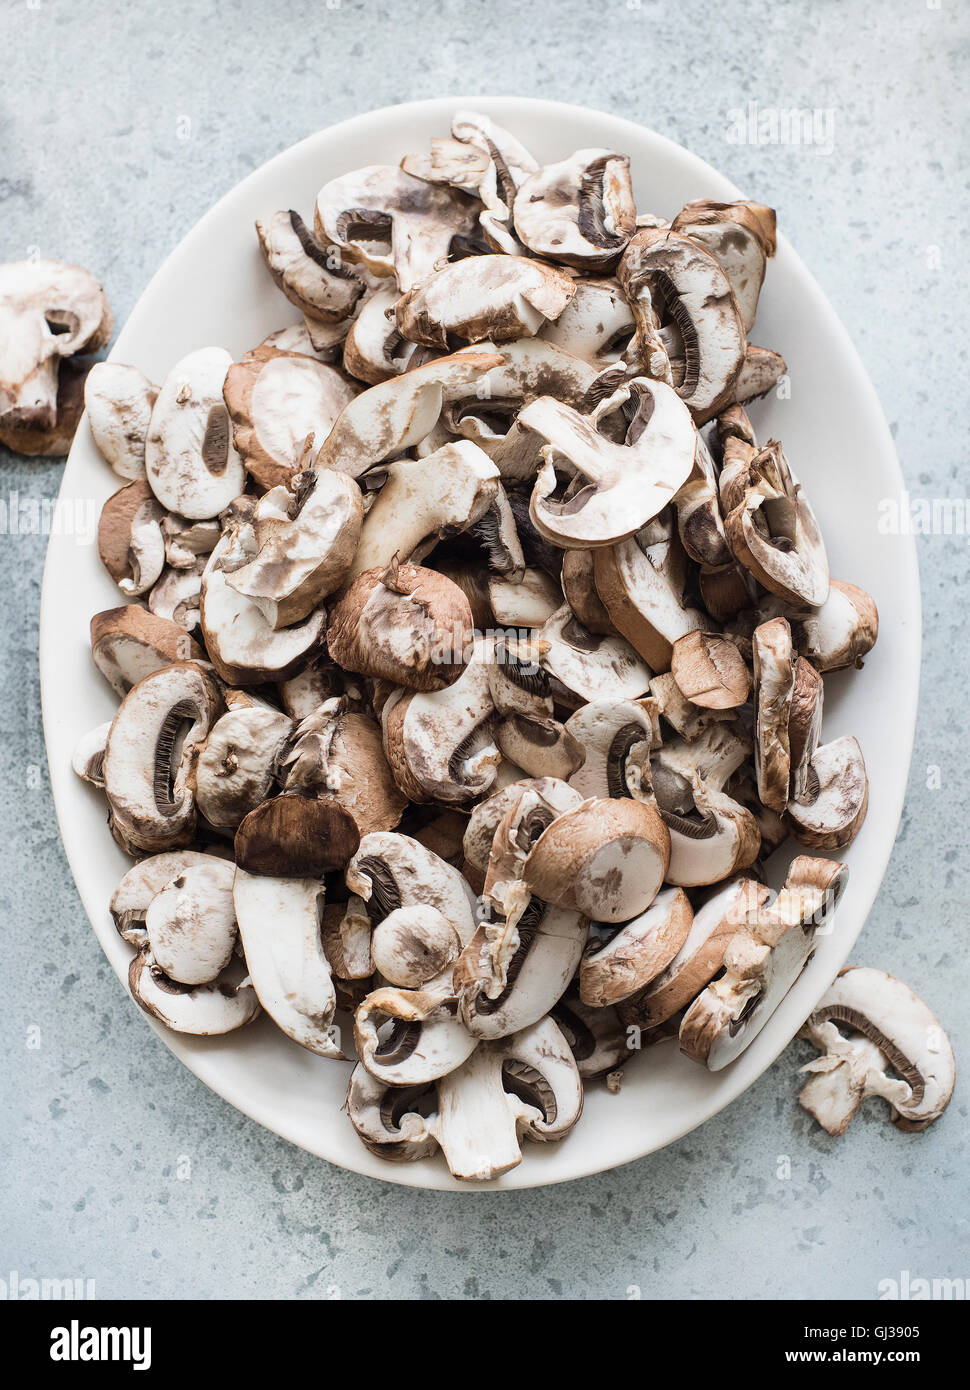 Overhead view of fresh sliced mushrooms on a plate Stock Photo